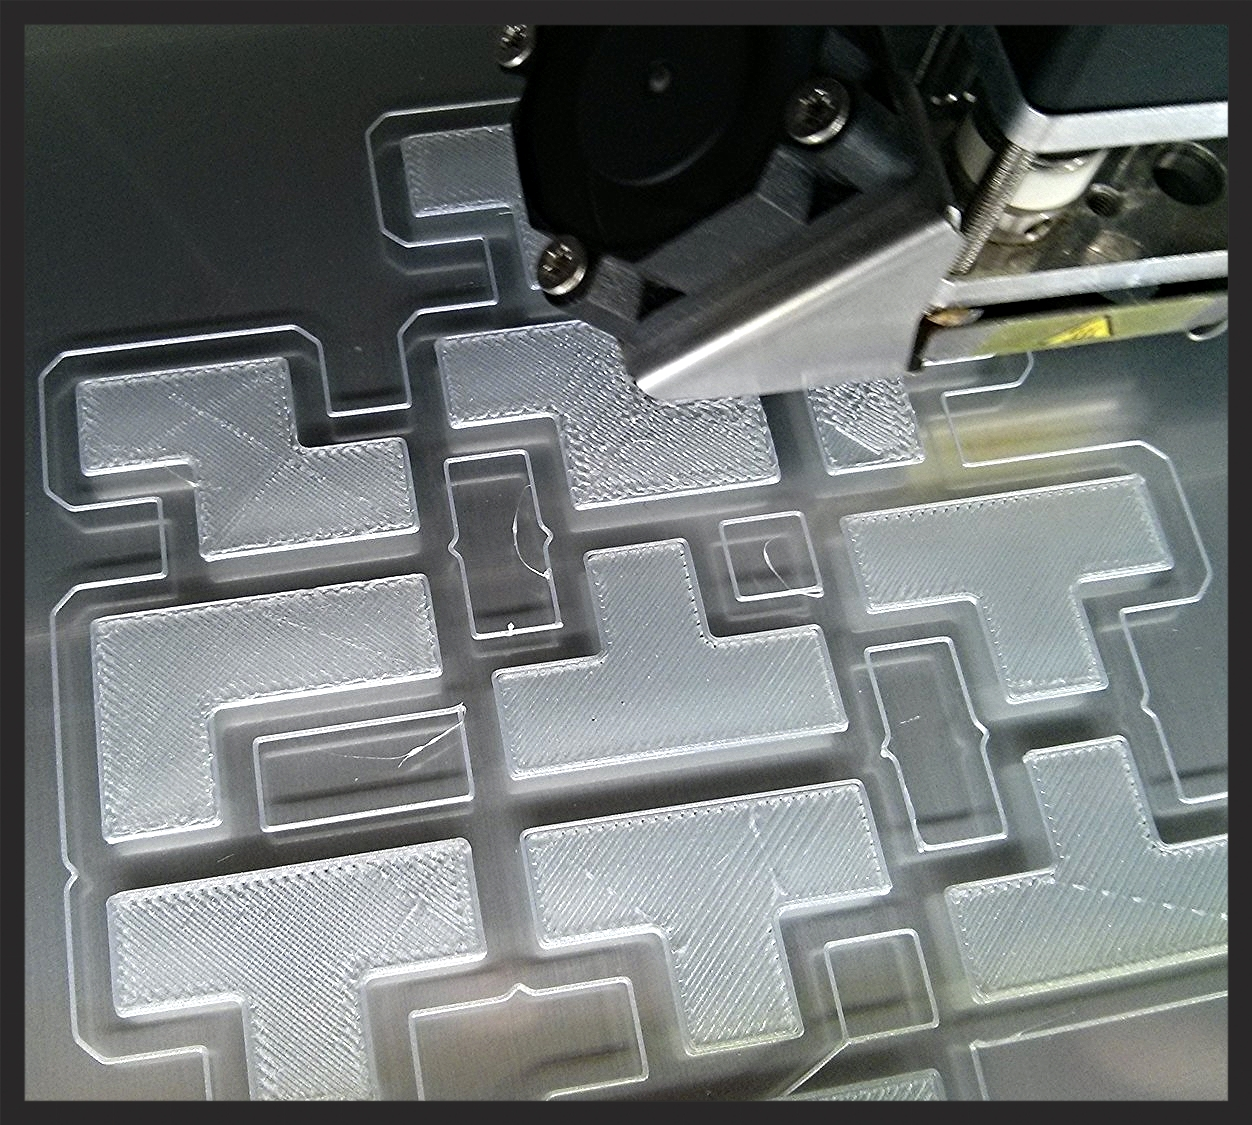 More Under-Extrusion